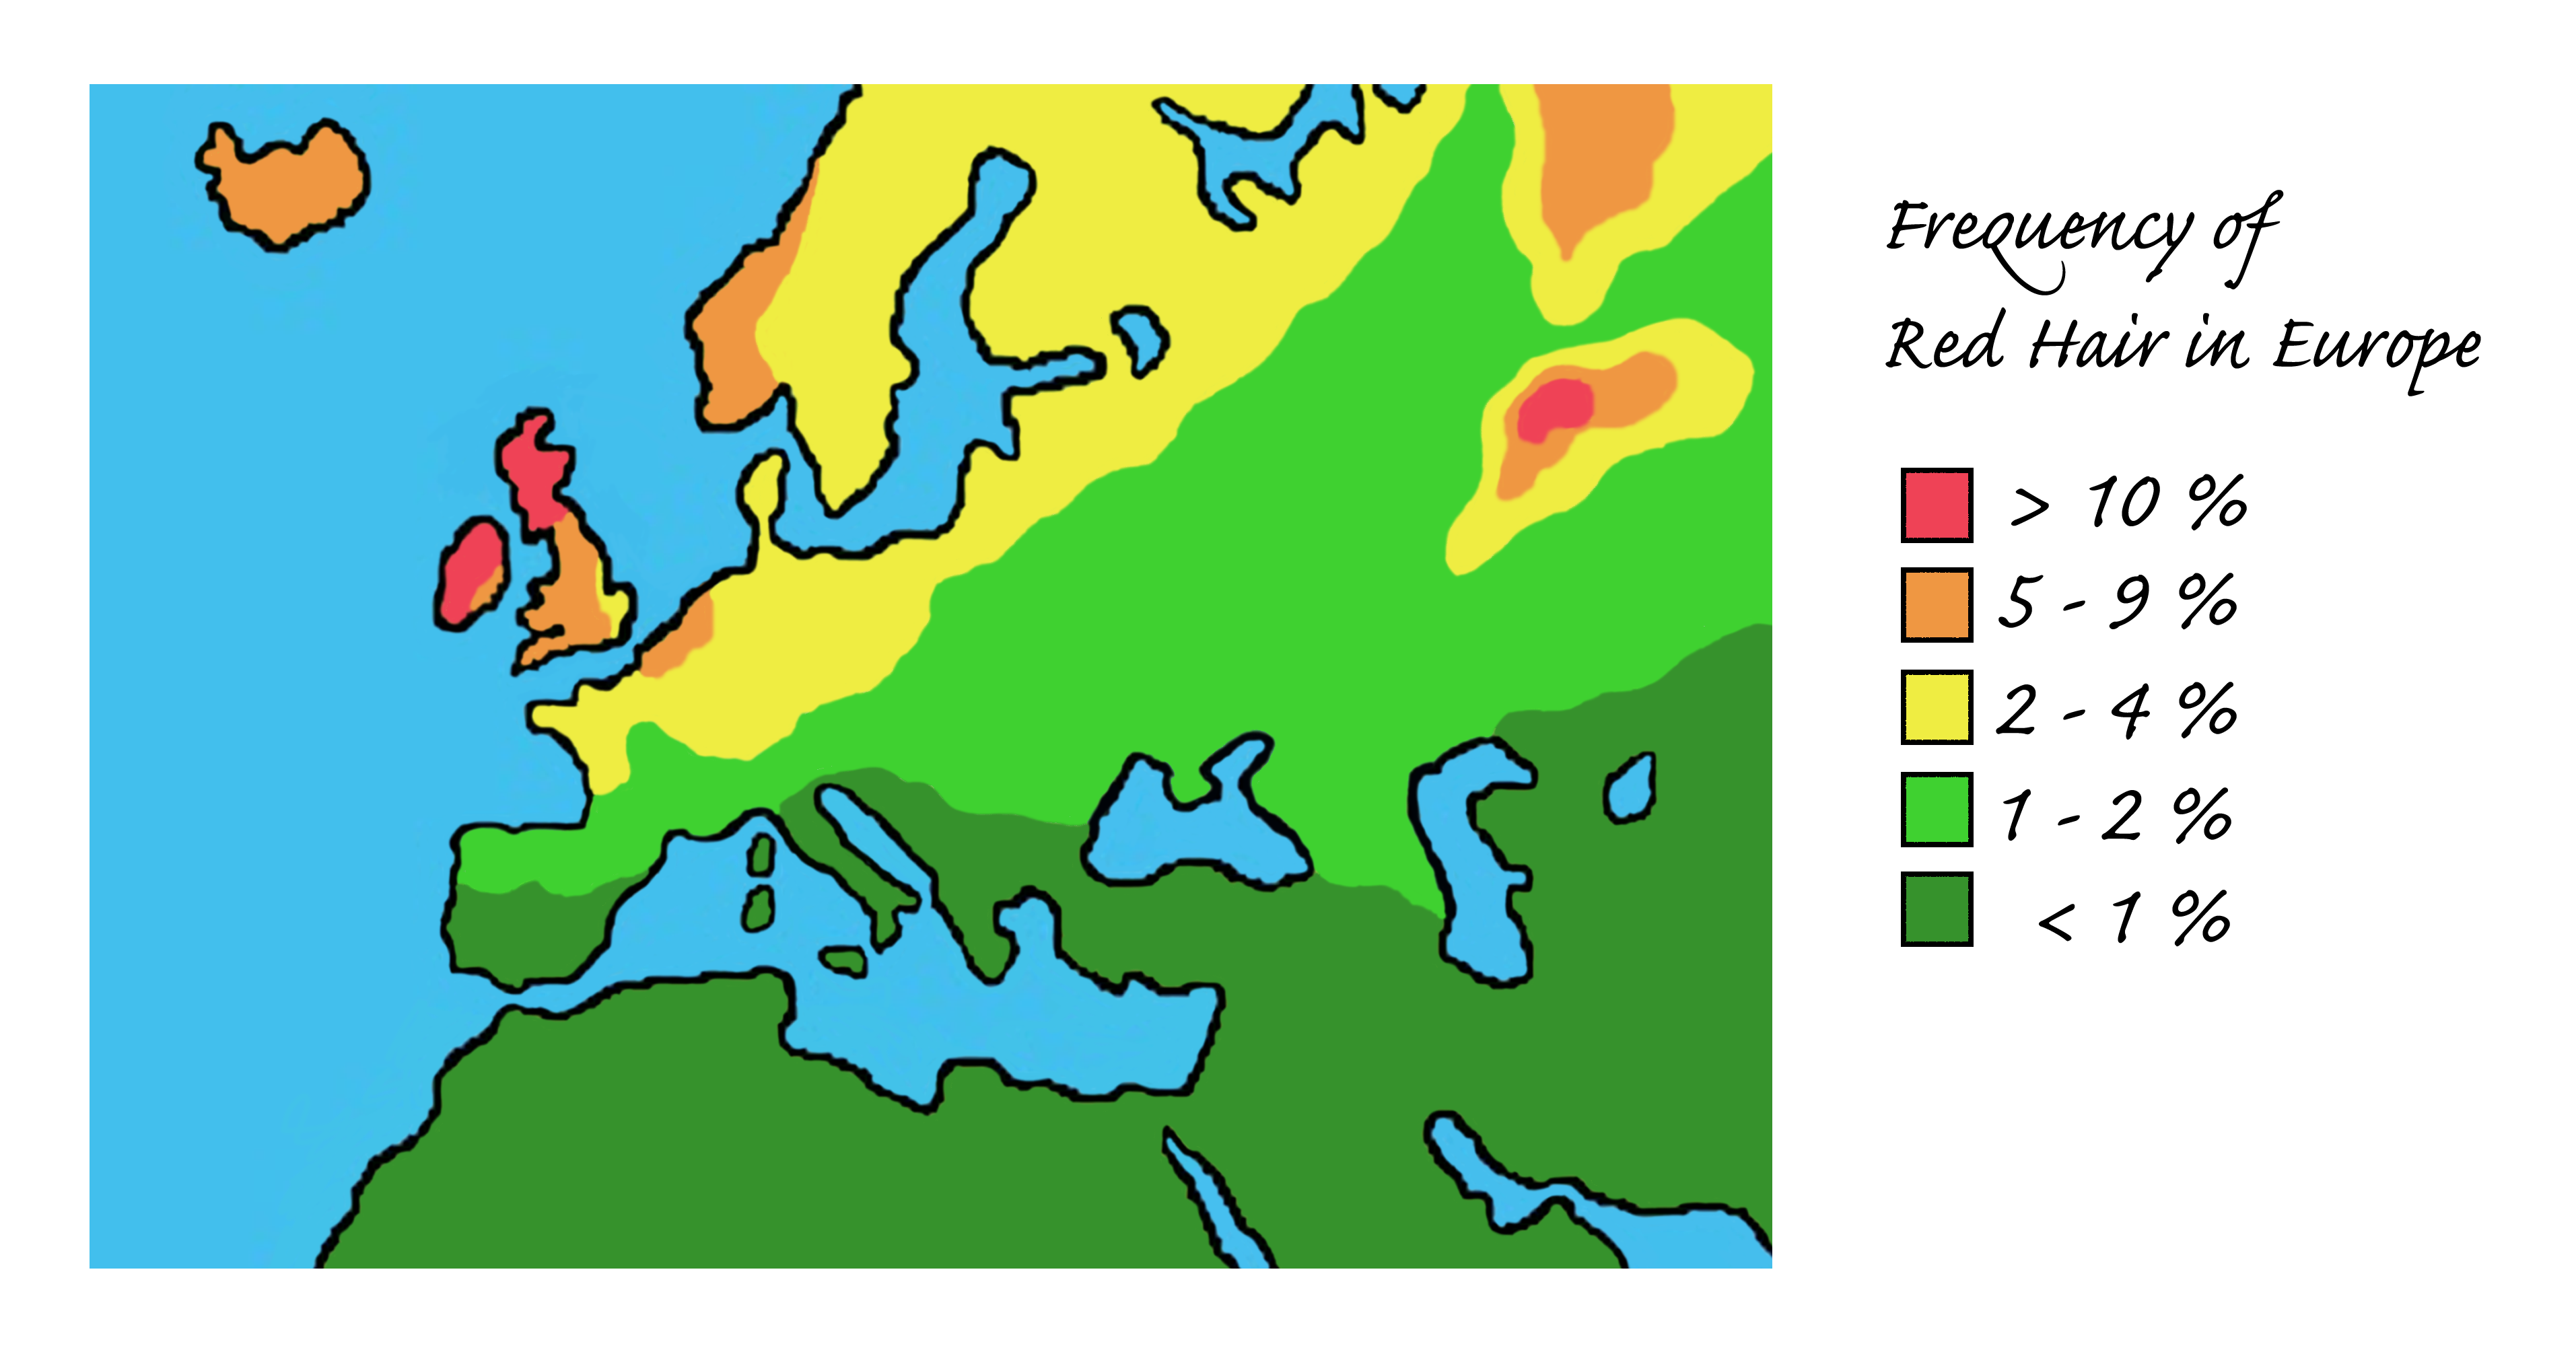 red hair map, showing its approximate frequency across Europe